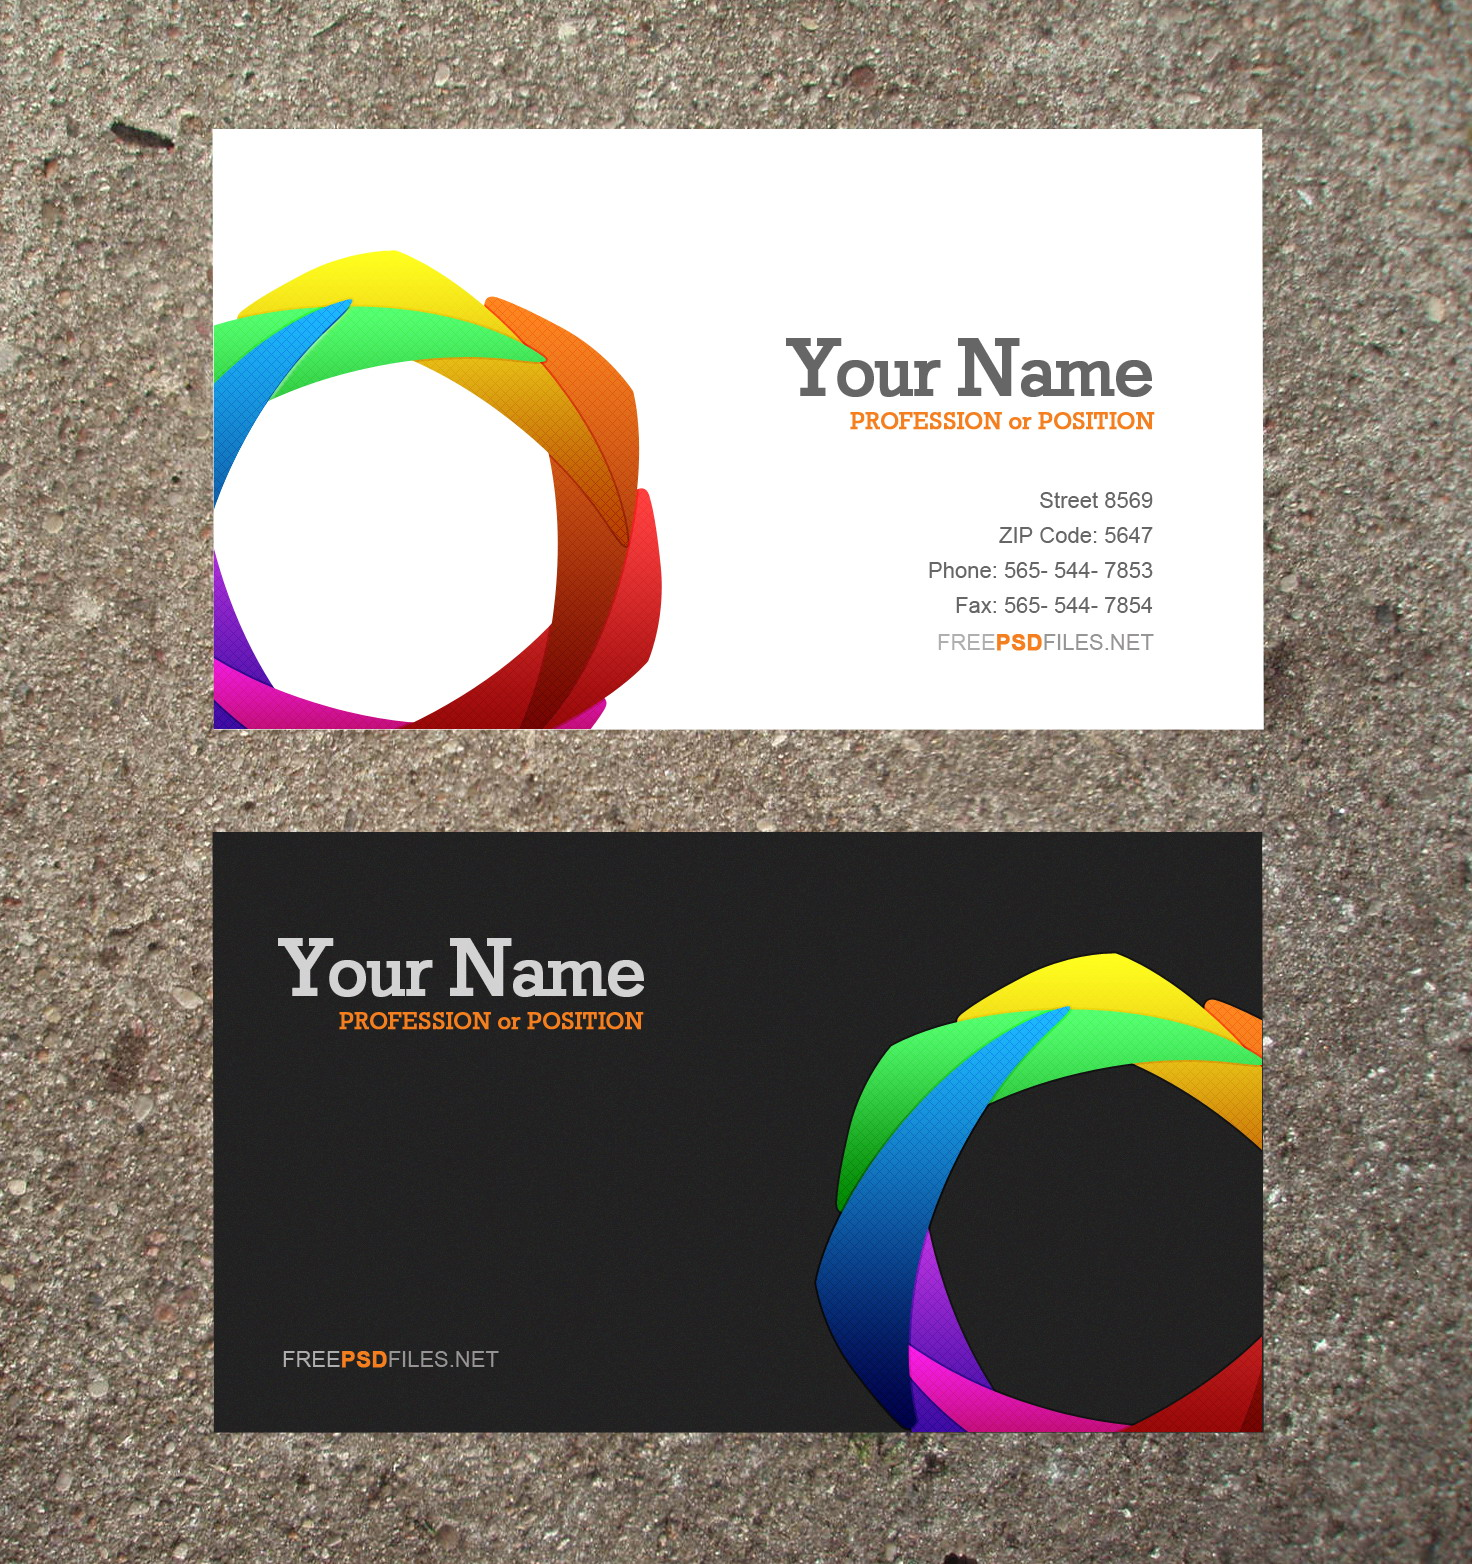 Business card template online etamemibawa business card template online wajeb Gallery